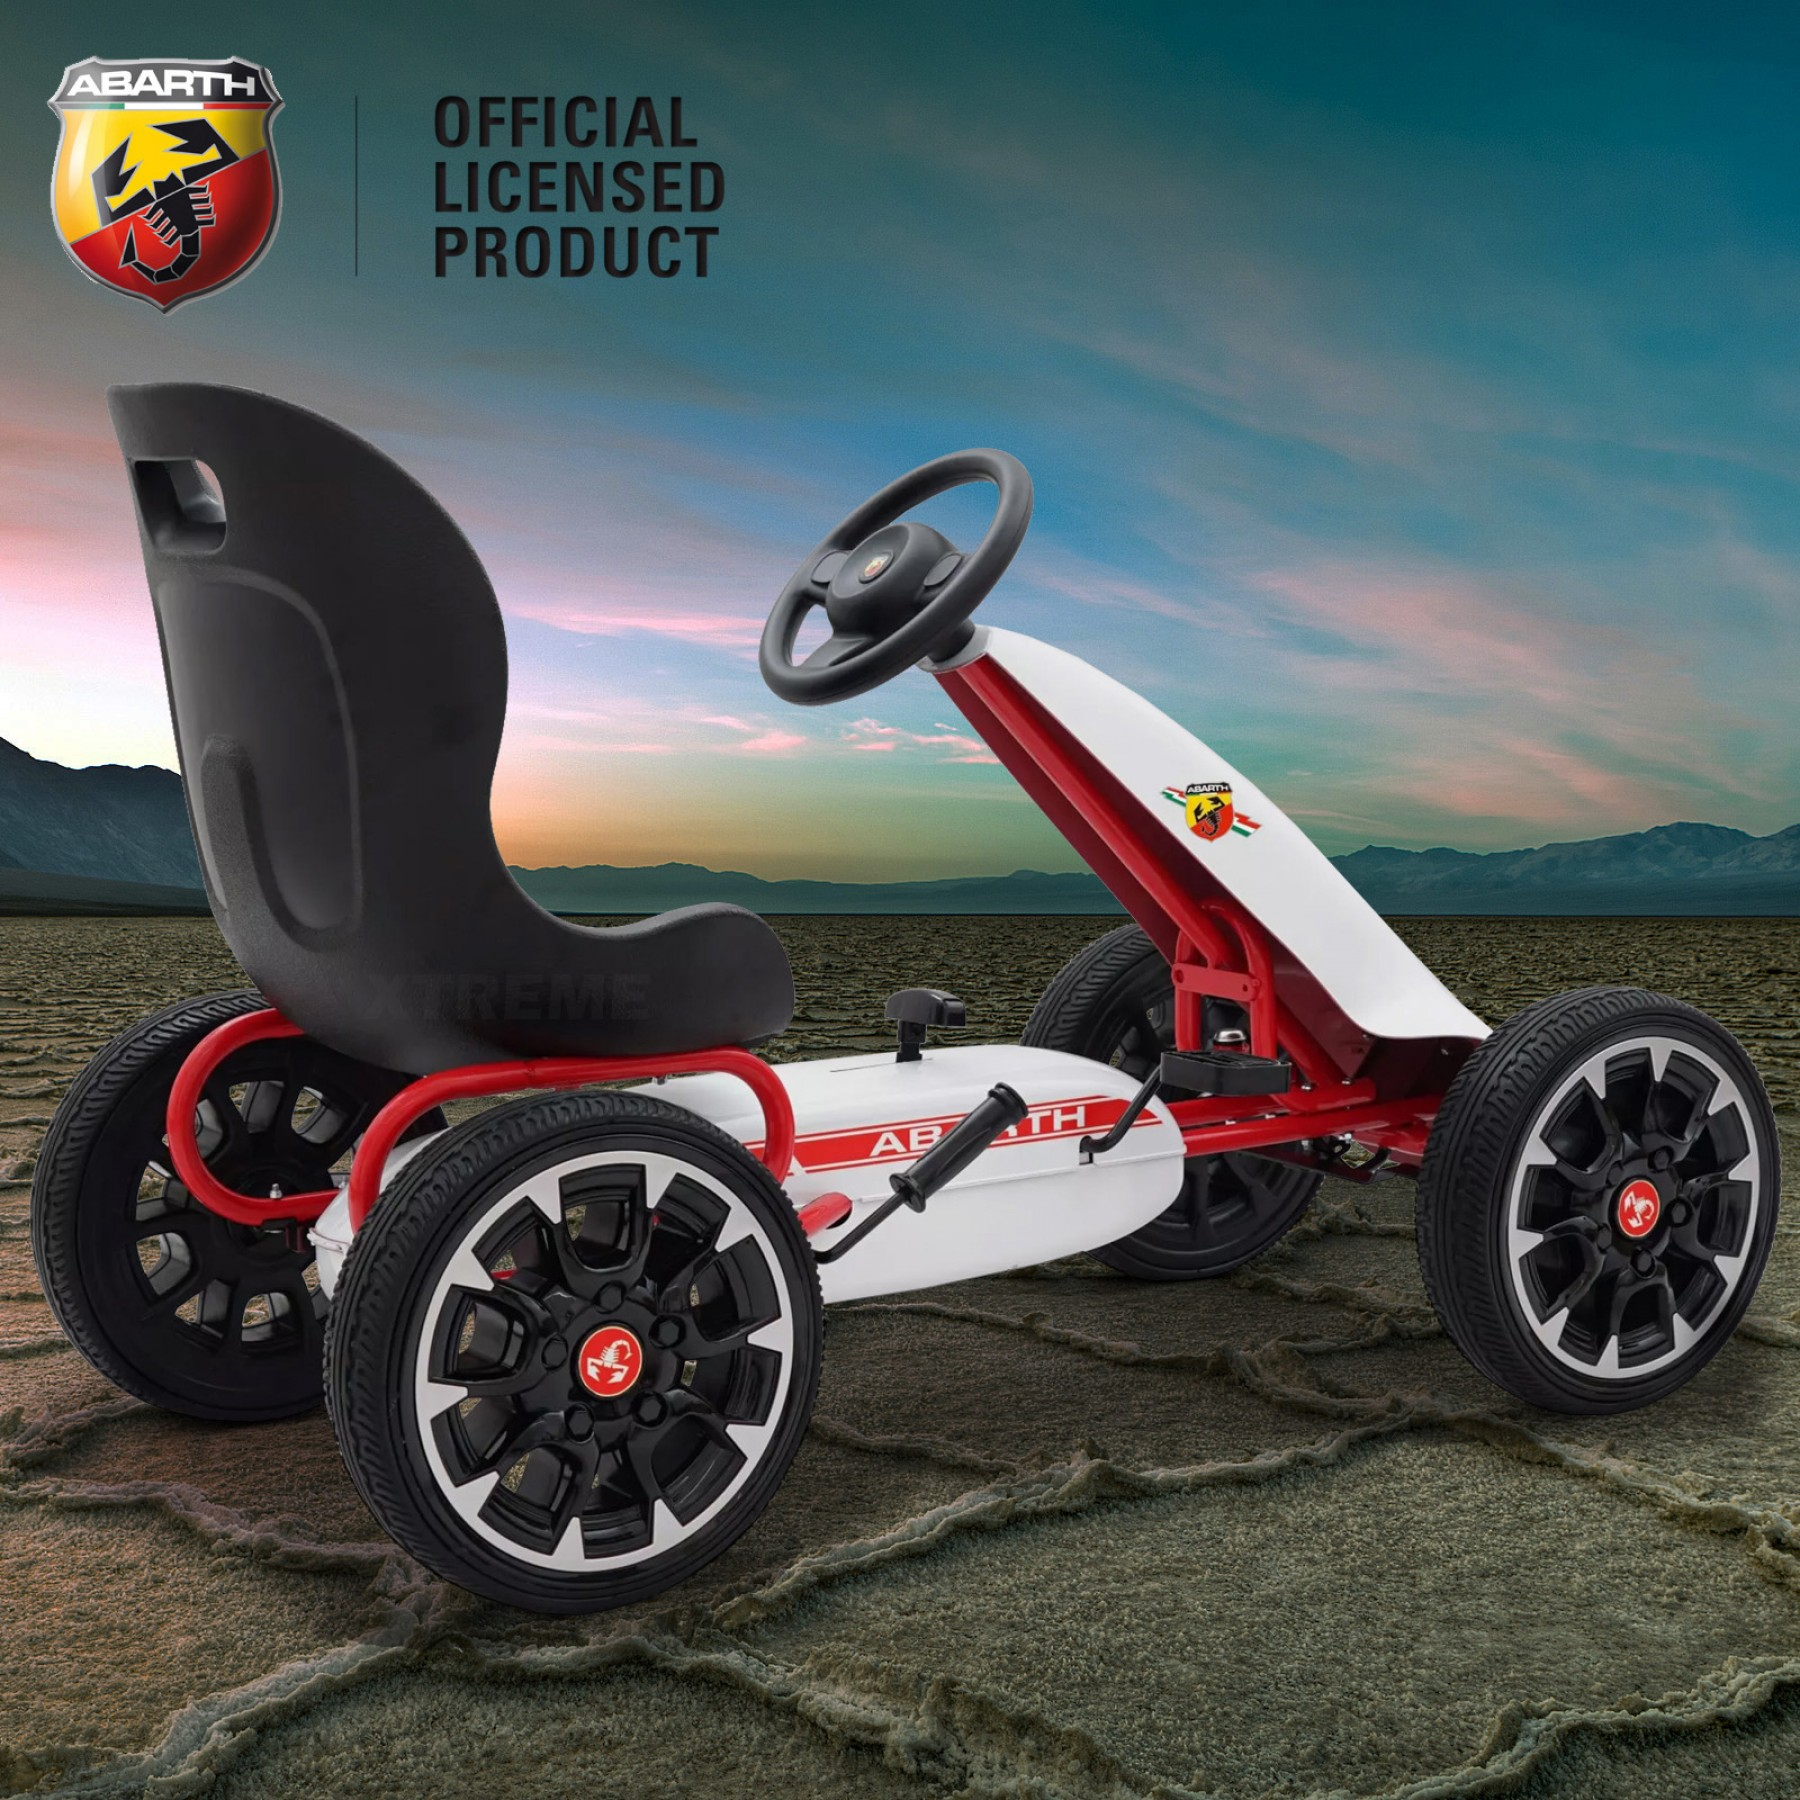 Xtreme Kids Official Licensed Abarth Pedal Go Kart with Hand Brake in White